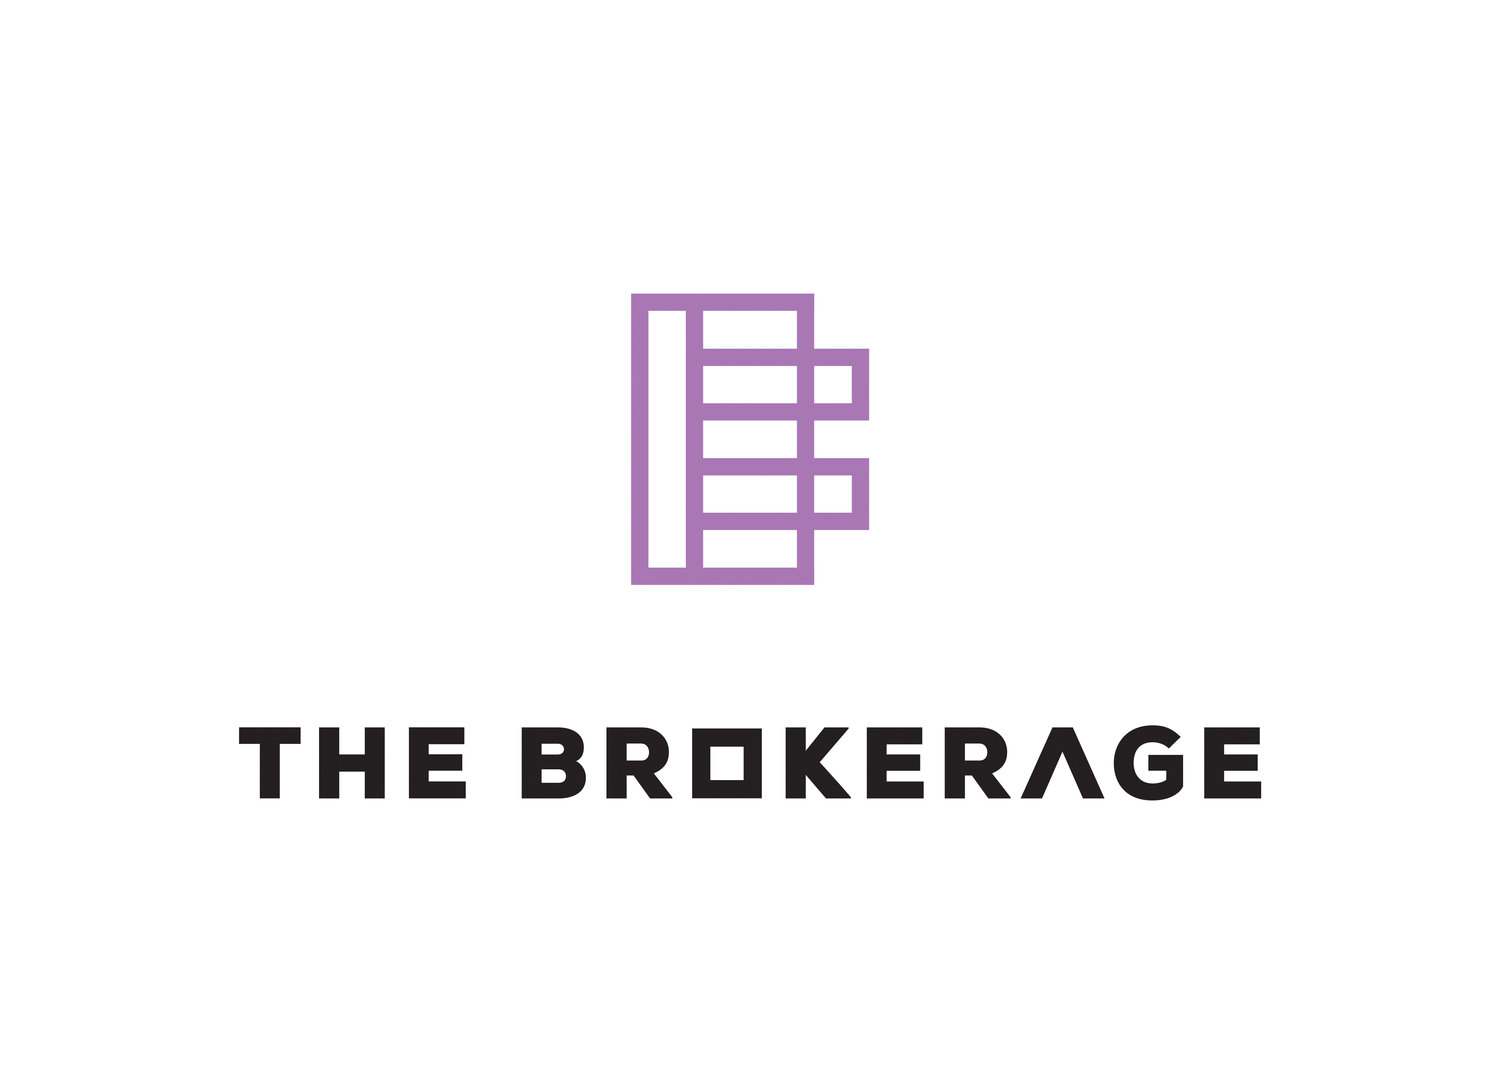 The Brokerage: Commercial & Residential Brokers